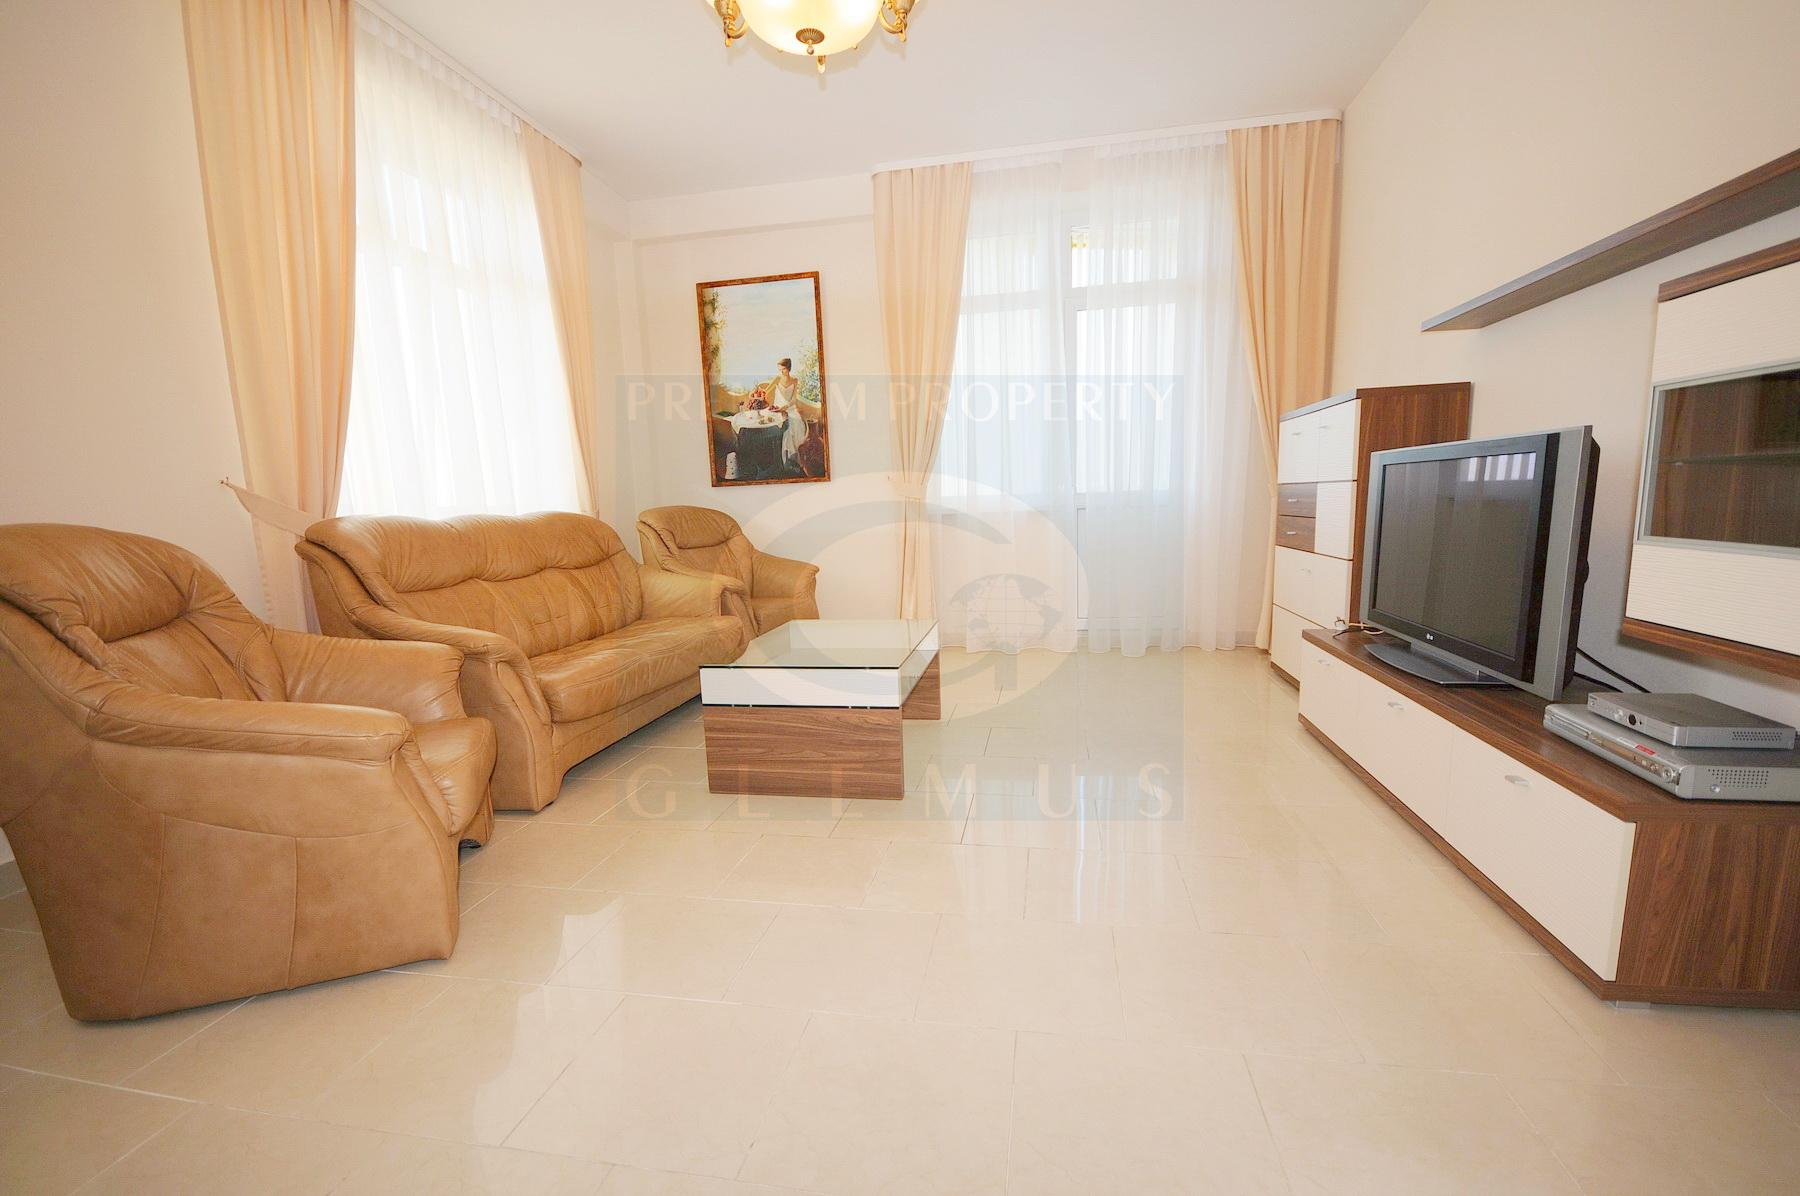 Rent Apartment In Chisinau